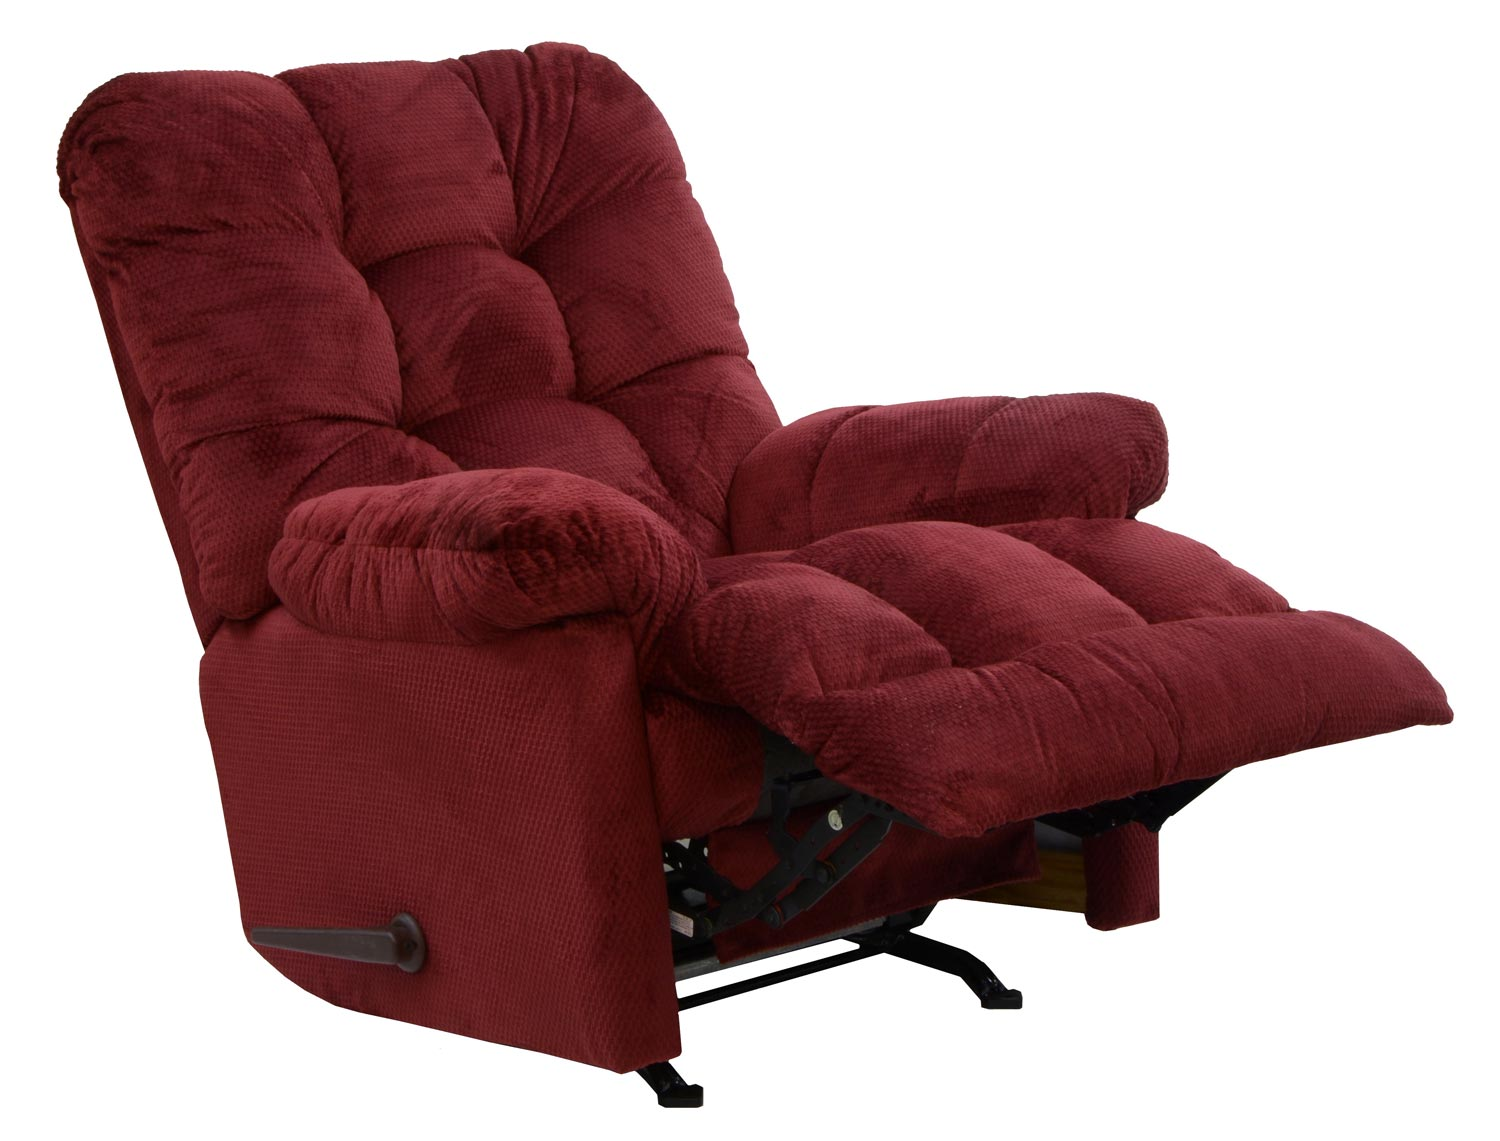 Catnapper nettles chaise rocker recliner with deluxe heat for Catnapper recliner chaise